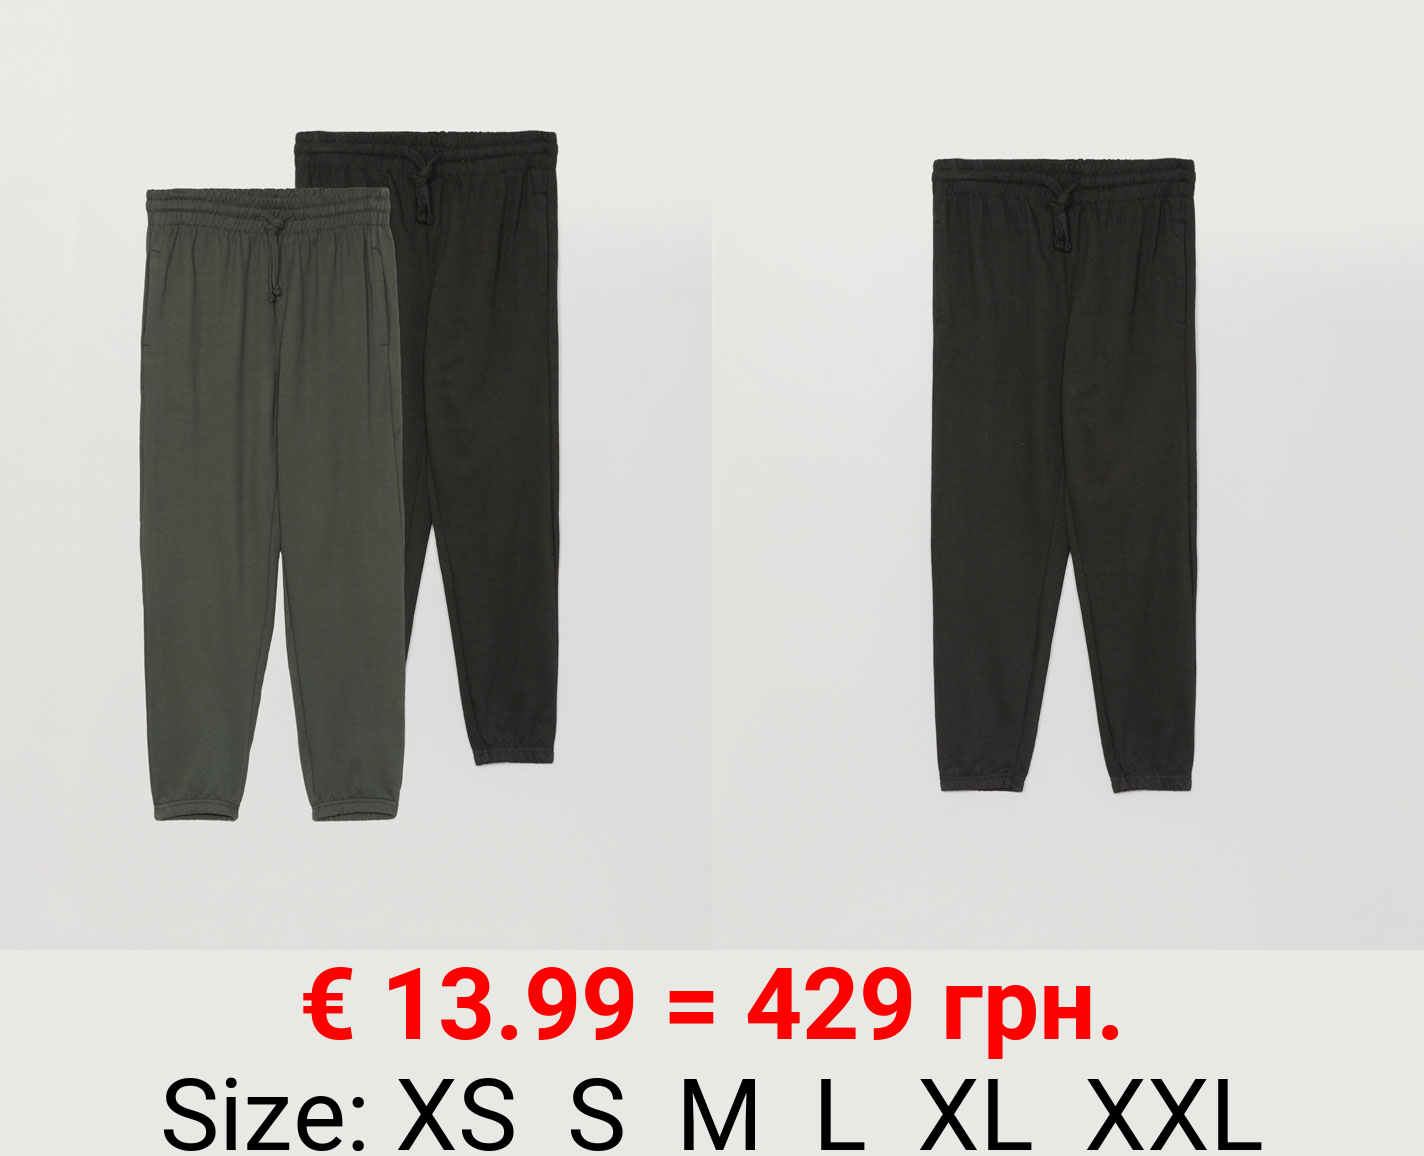 Pack of 2 pairs of basic joggers